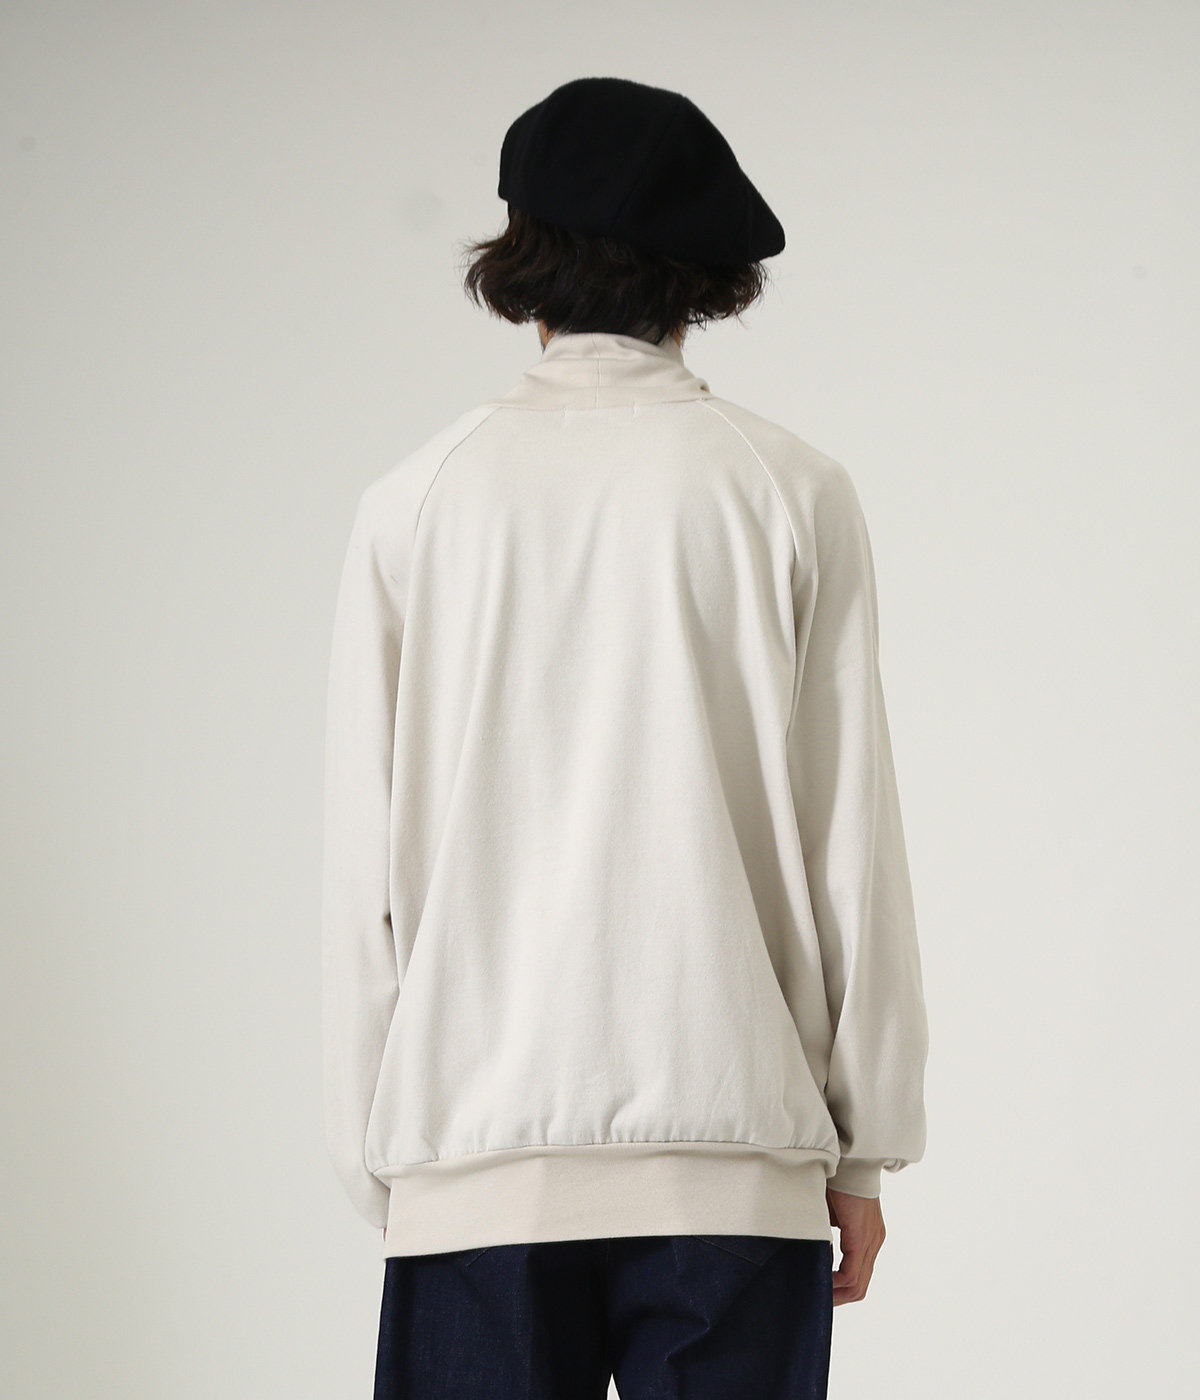 LOOSE NECK - 30/2 combed cotton knit brushed -